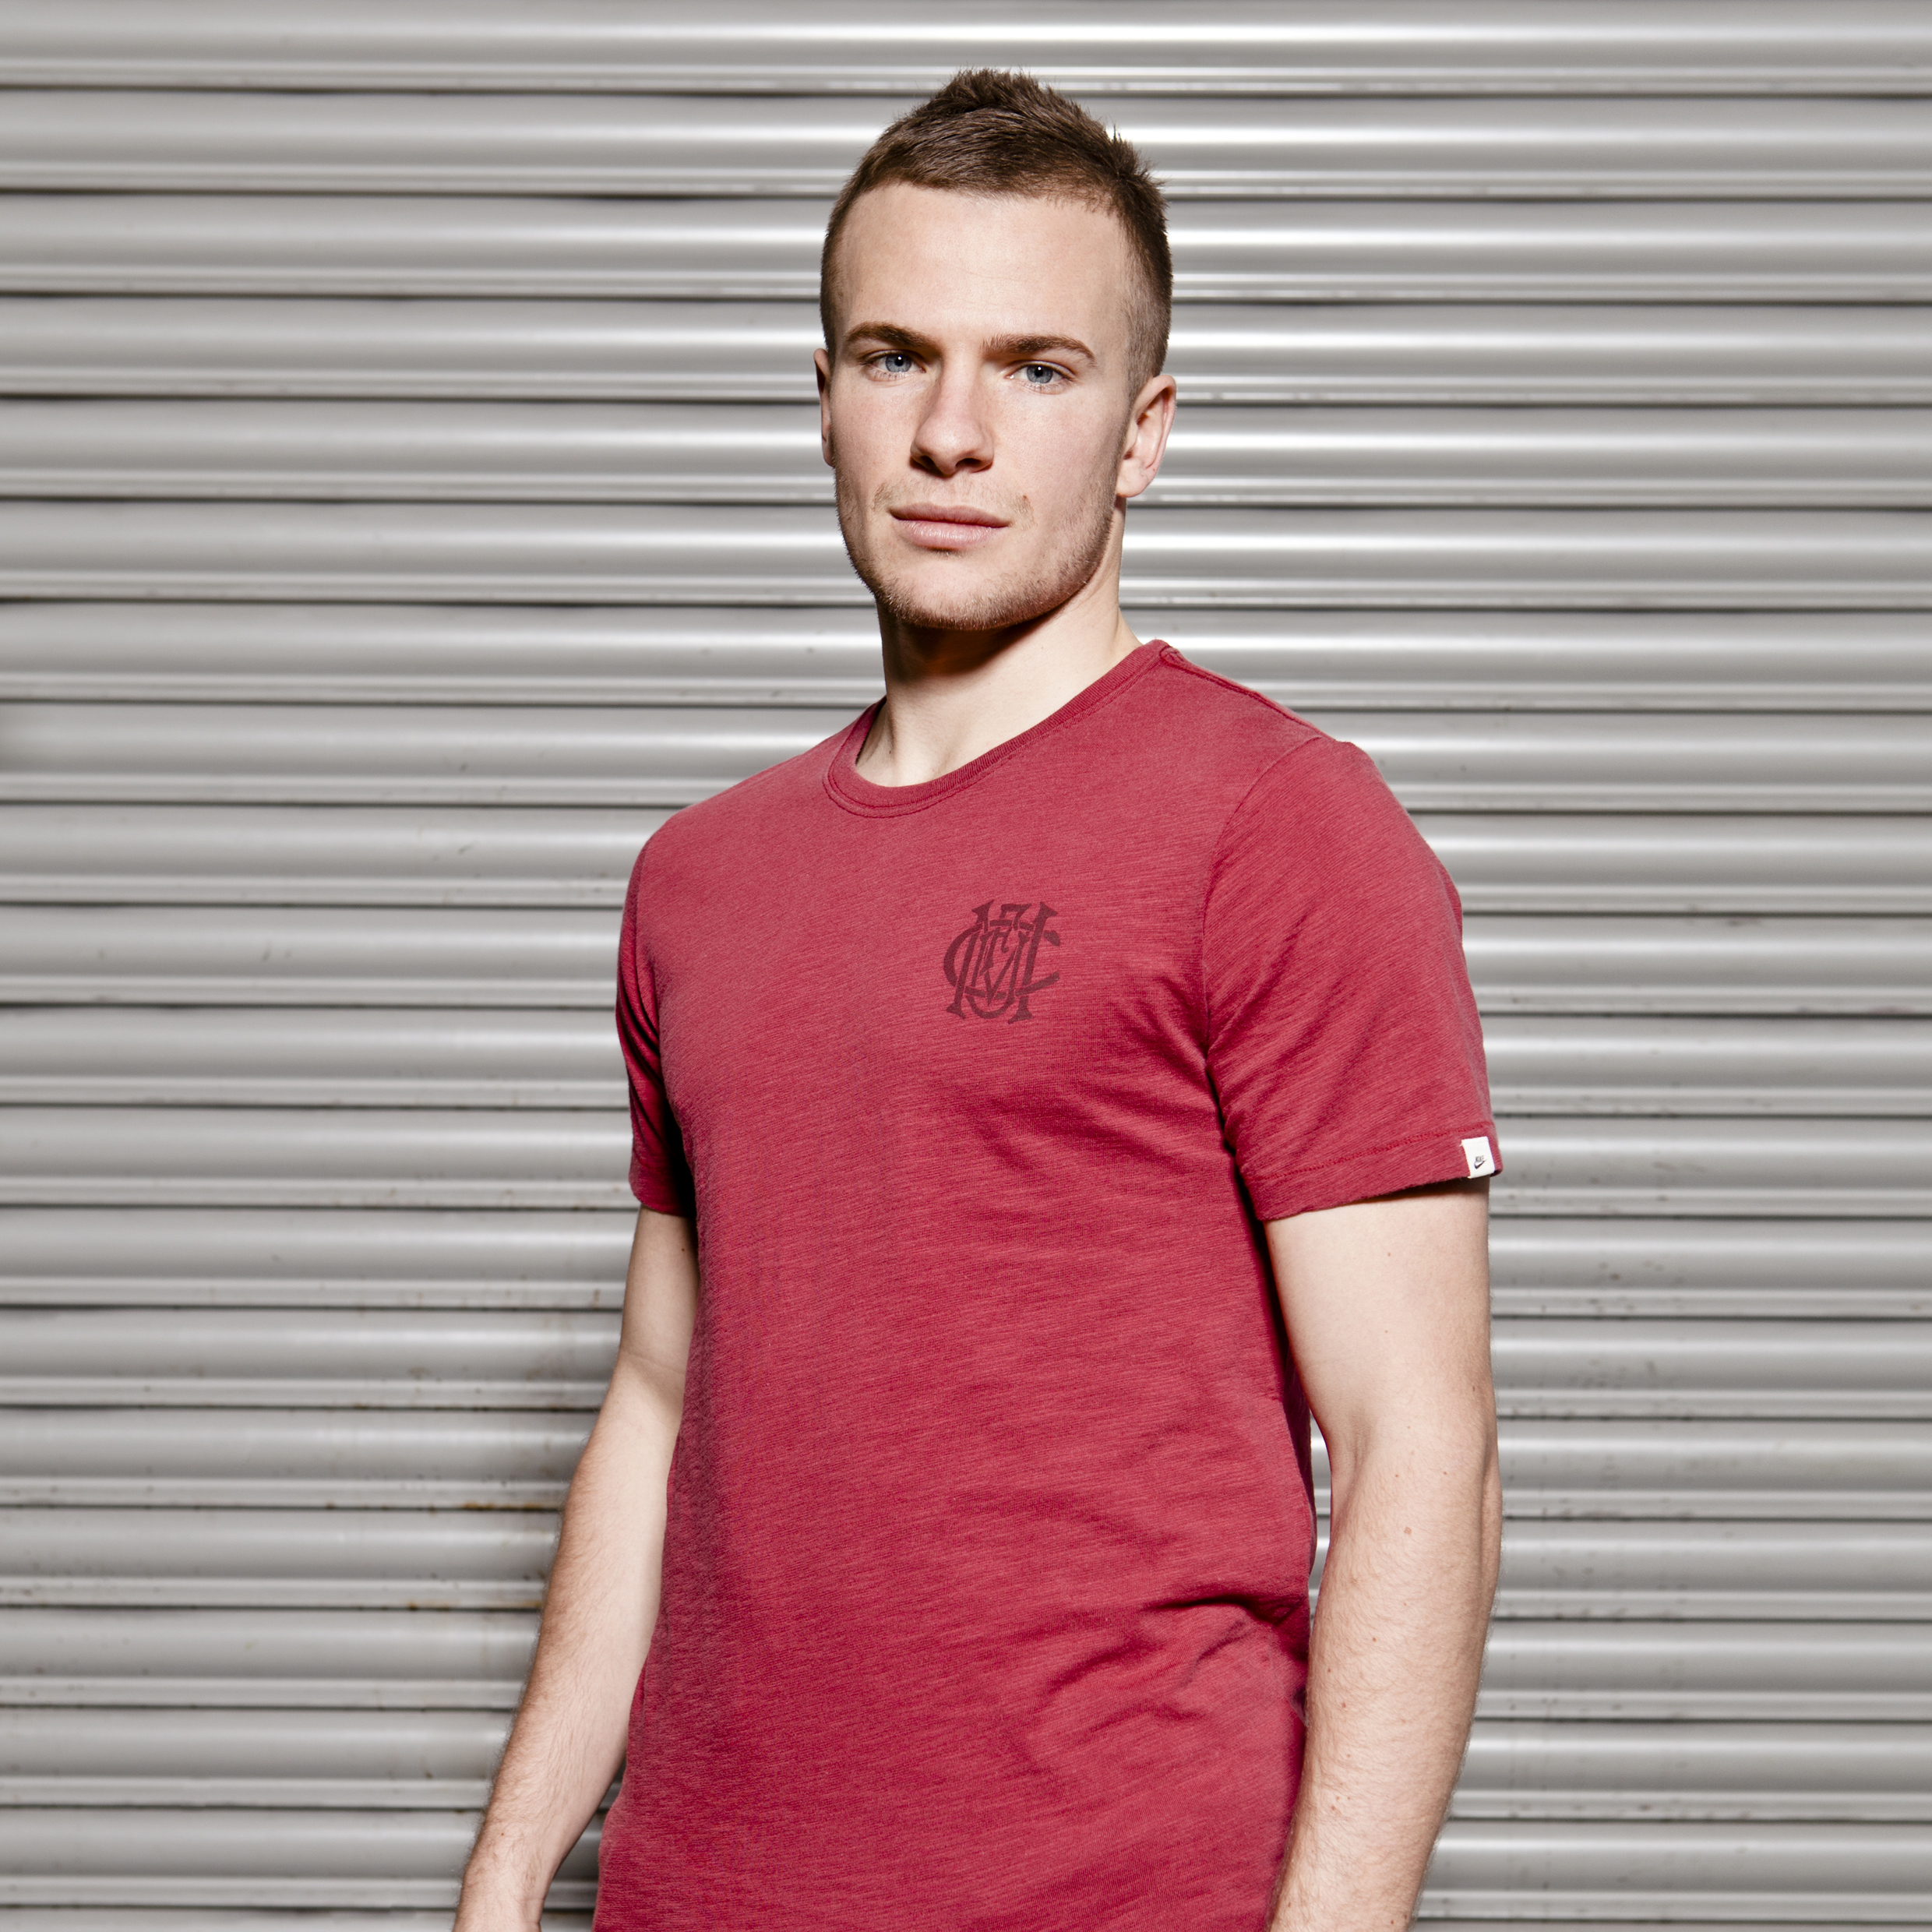 Manchester United Covert Vintage Crew Neck T-Shirt - Team Red